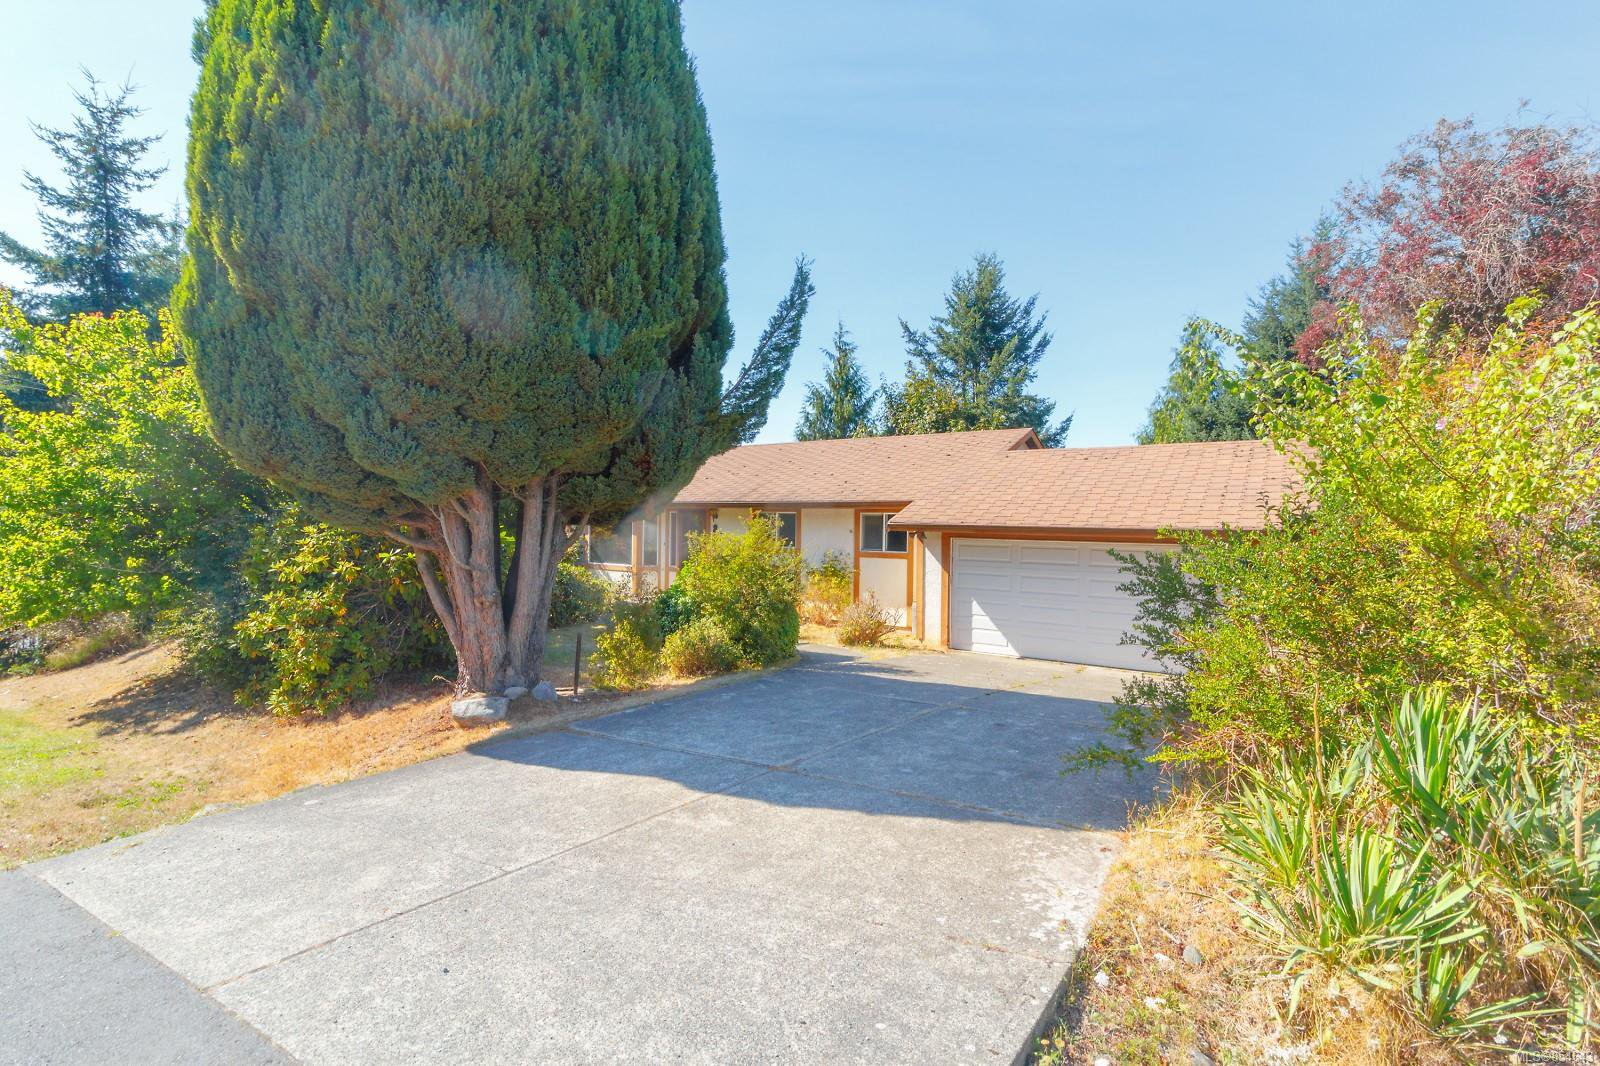 Main Photo: 892 Cecil Blogg Dr in : Co Triangle Single Family Detached for sale (Colwood)  : MLS®# 854643